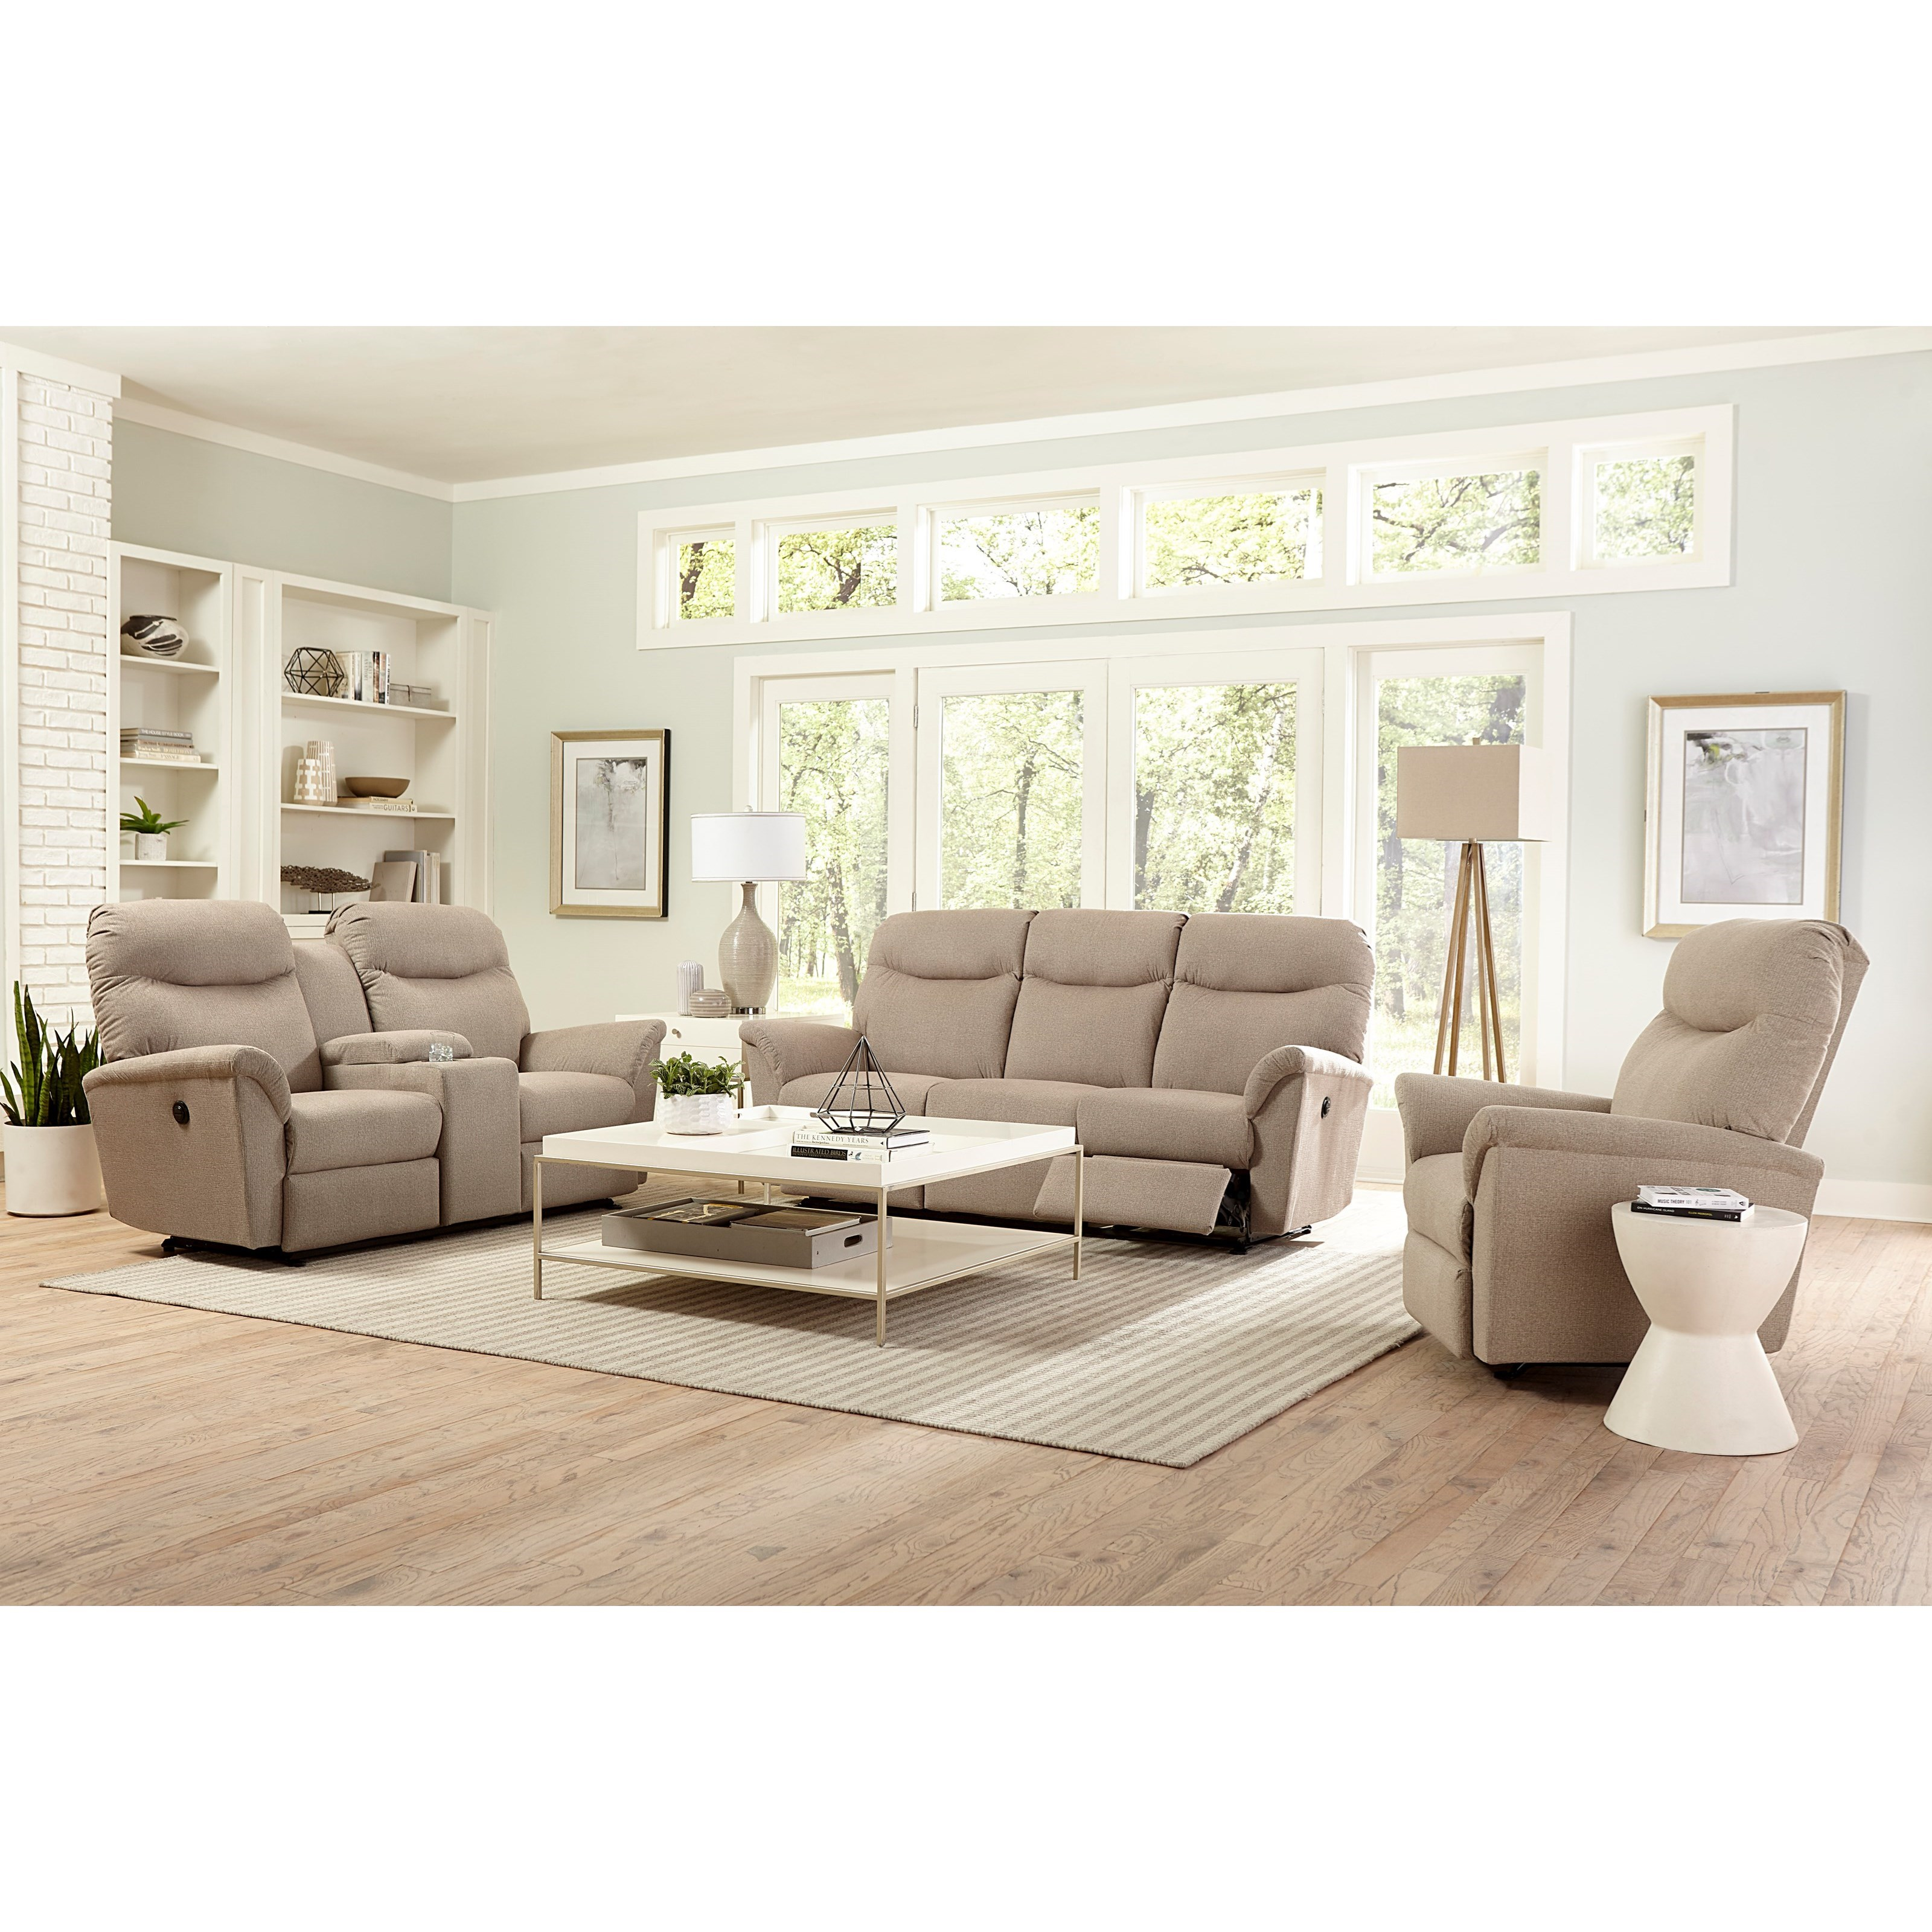 Caitlin Power Reclining Living Room Group by Best Home Furnishings at Baer's Furniture